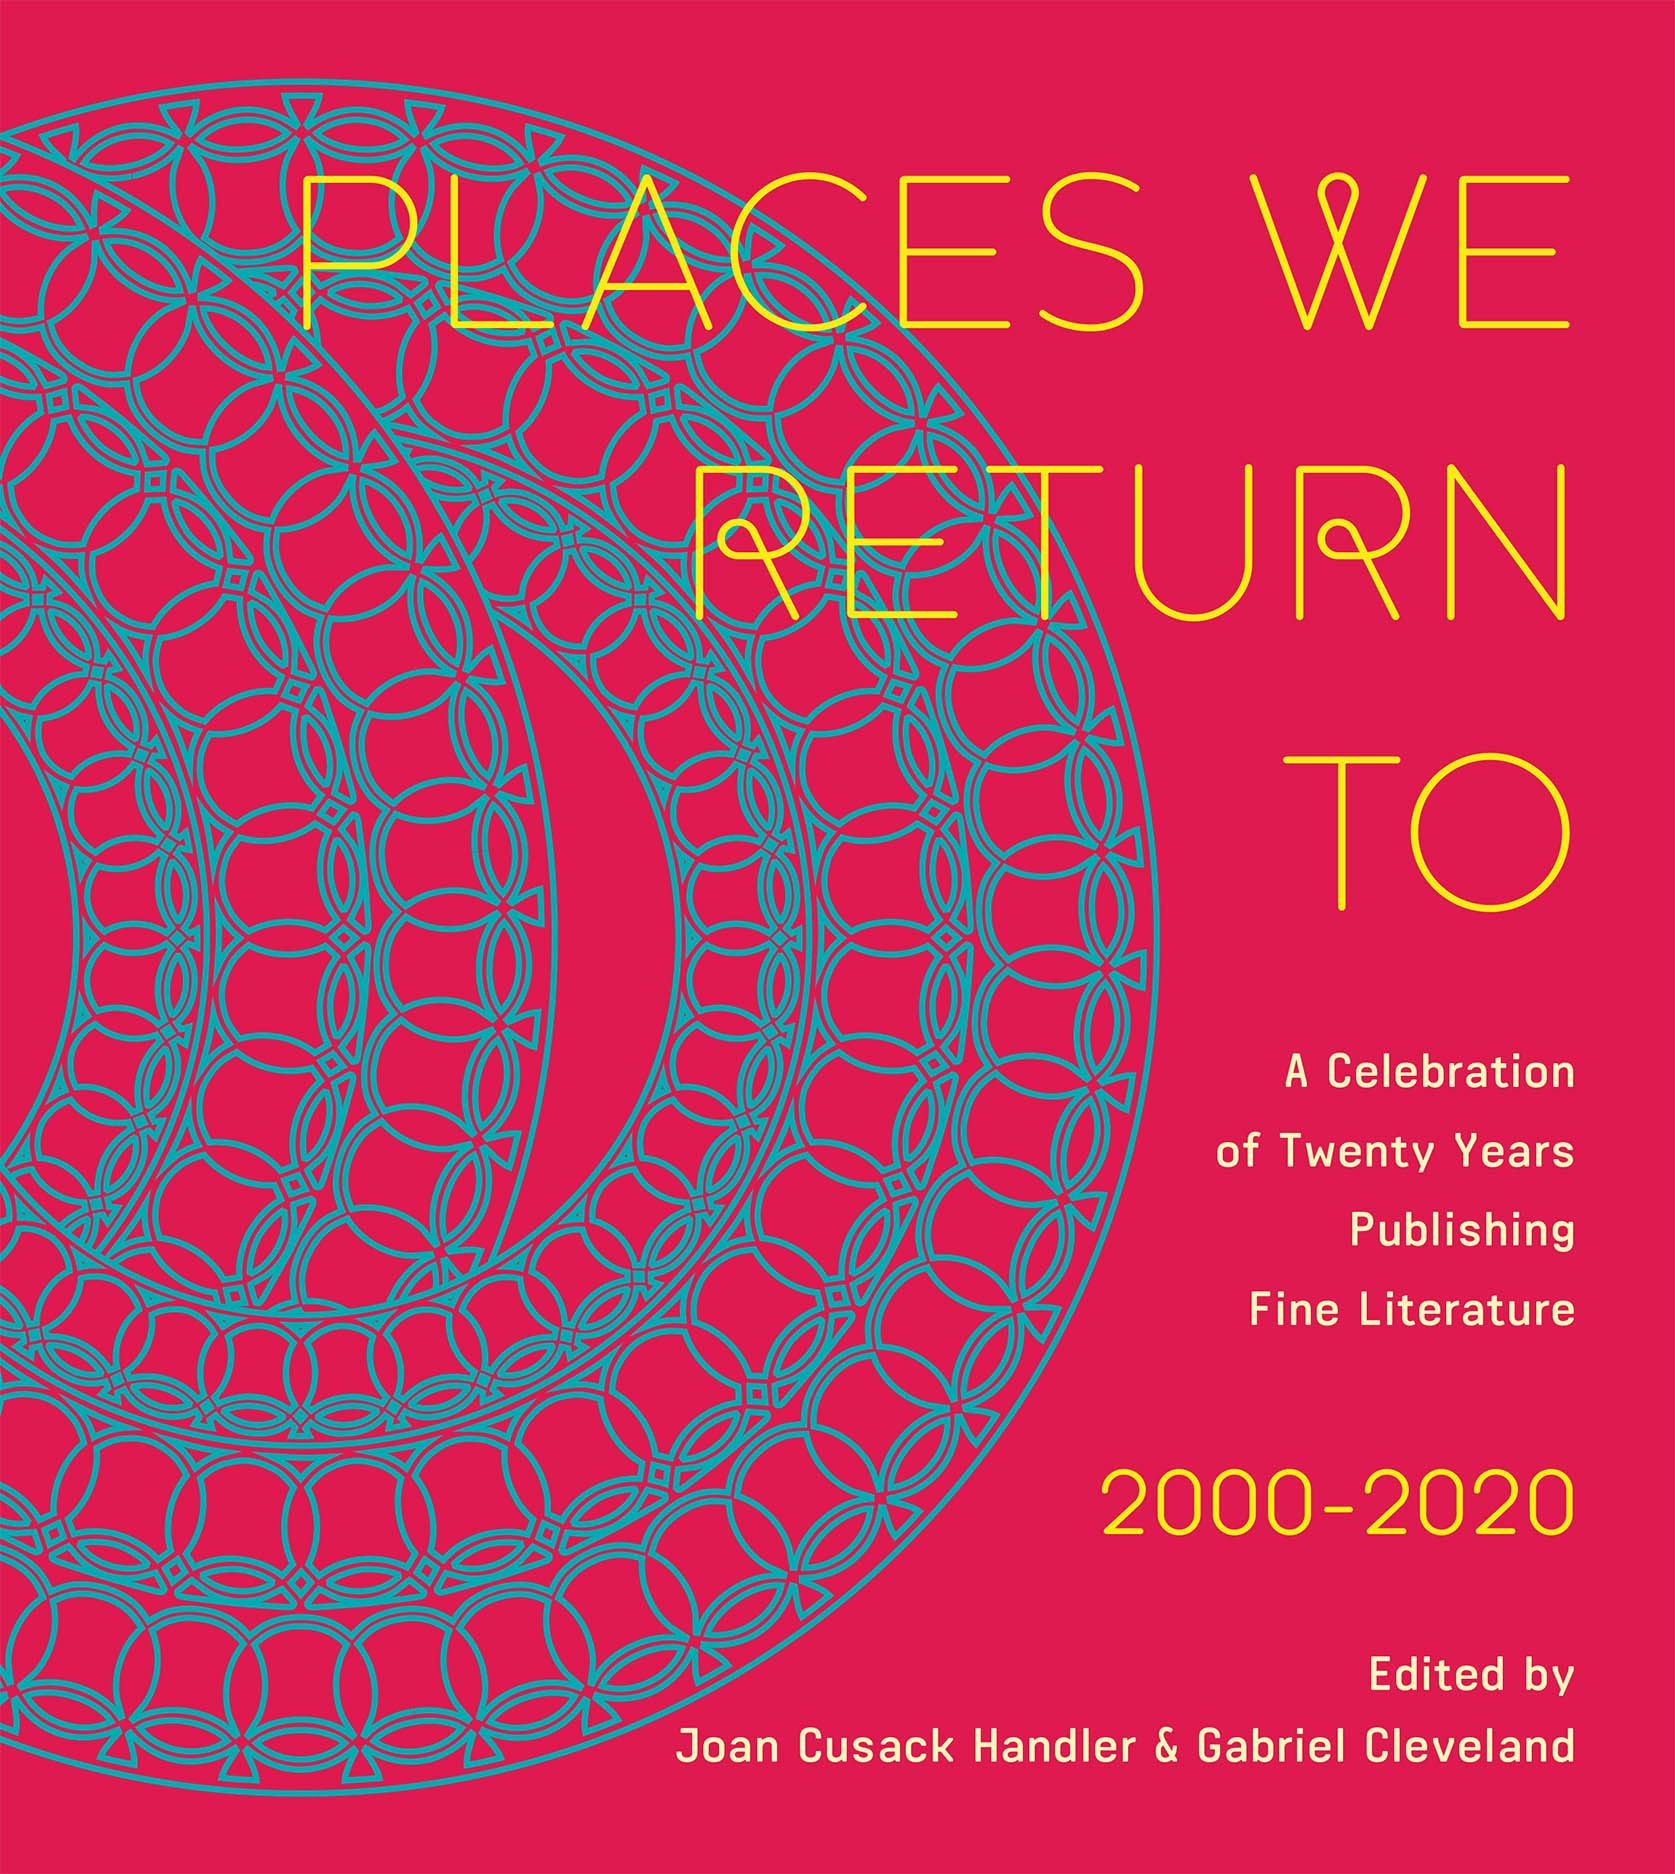 Places We Return To: A Celebration of Twenty Years Publishing Fine Literature by CavanKerry Press, 2000-2020